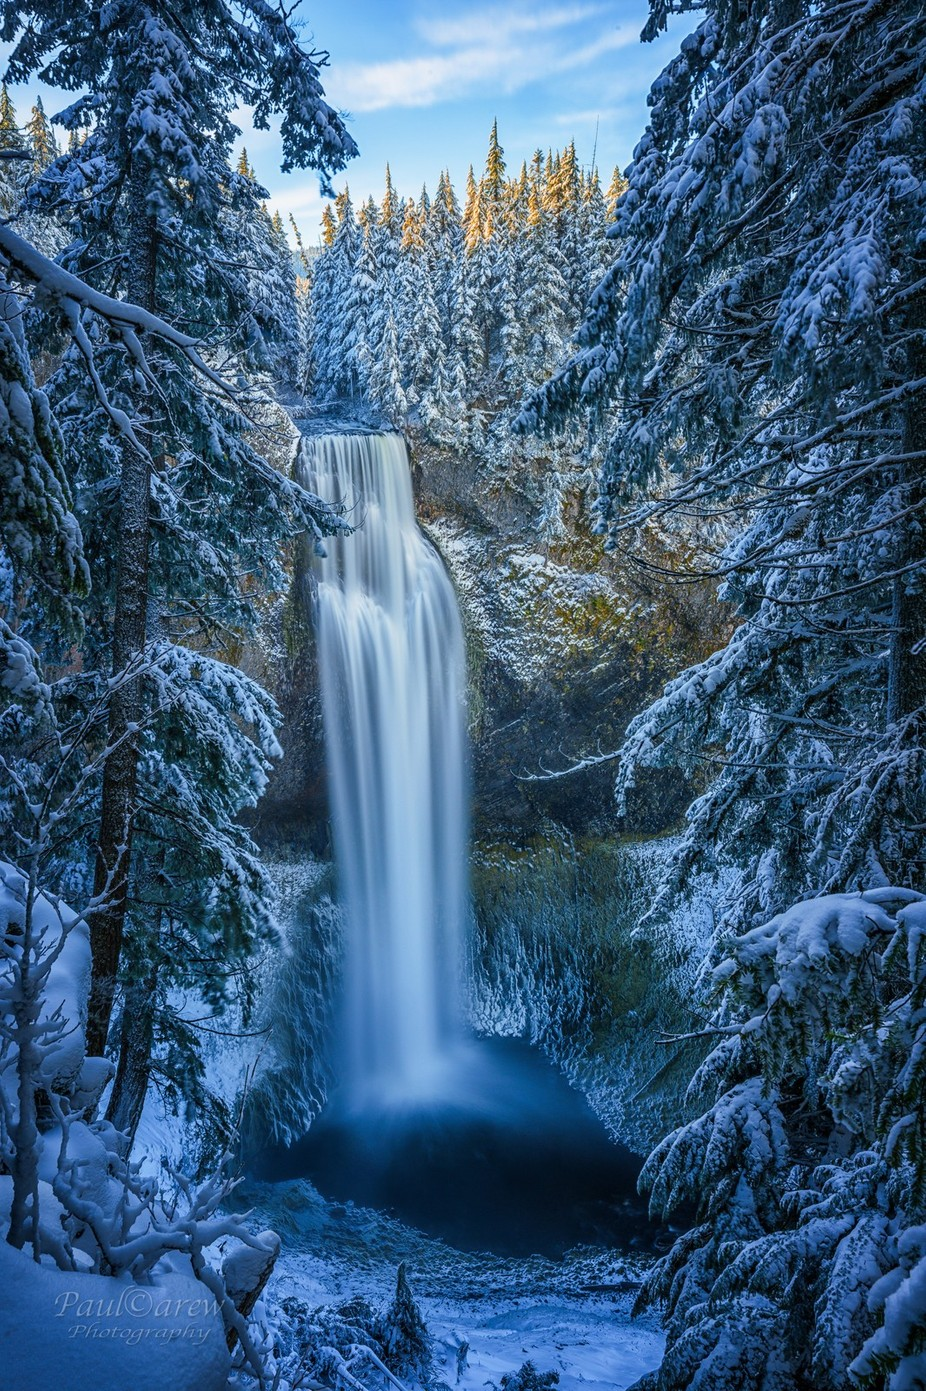 Salt Creek Falls by paulcarew - Monthly Pro Vol 37 Photo Contest